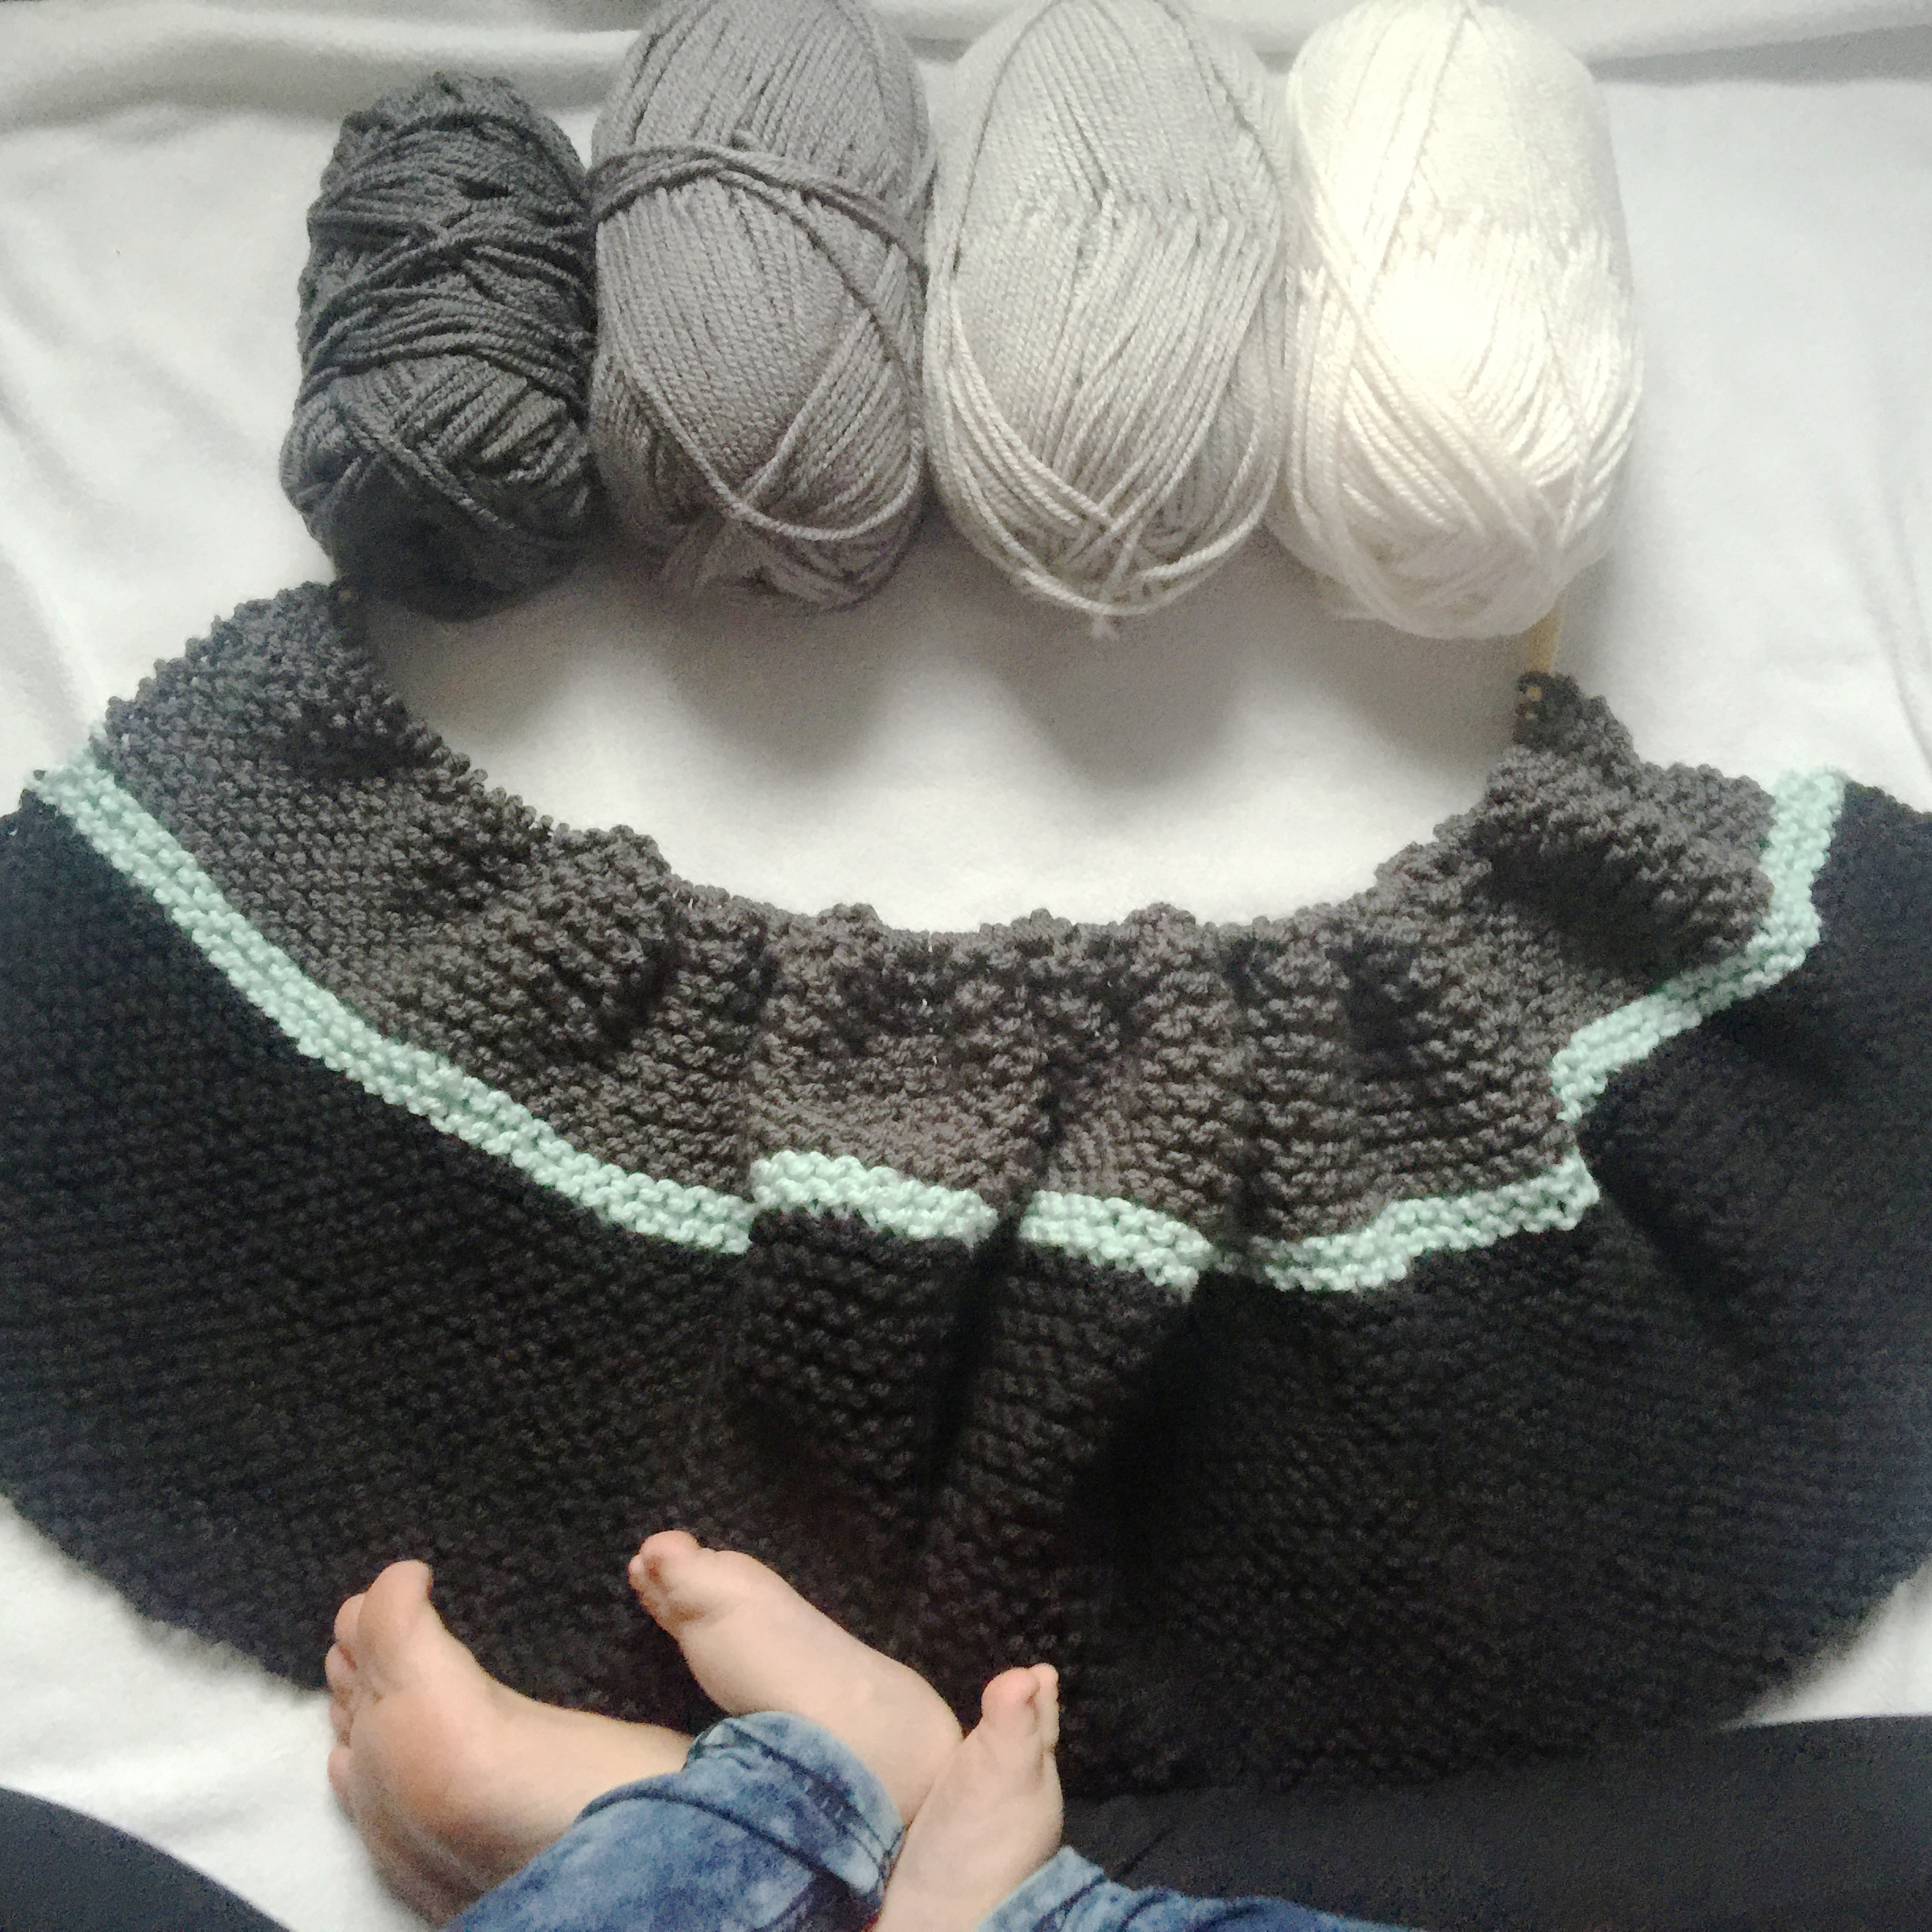 Knitting 101: How to do the knit stitch!